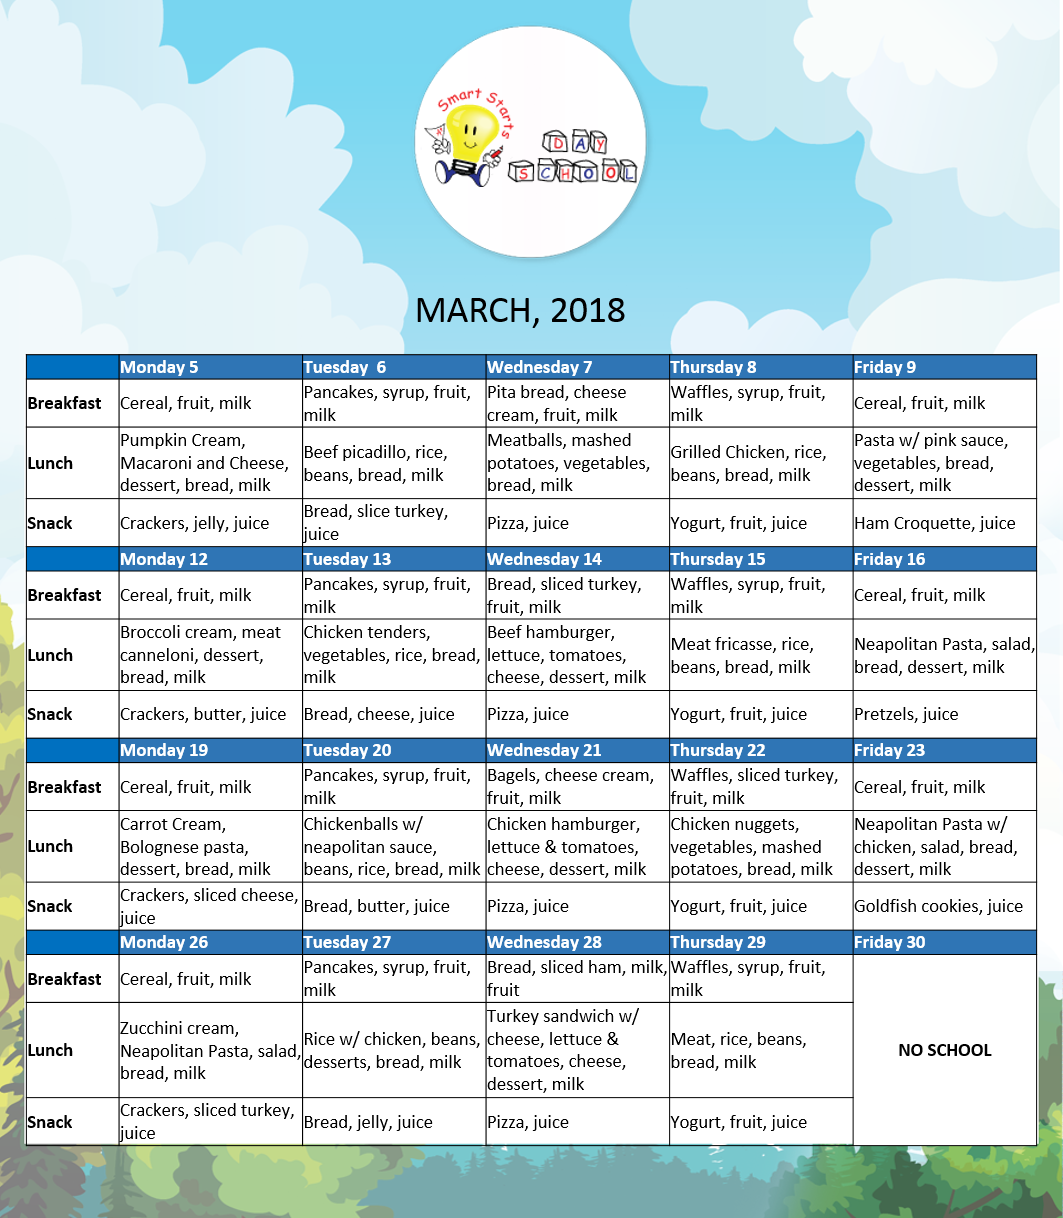 menu-march2018-ssds.png